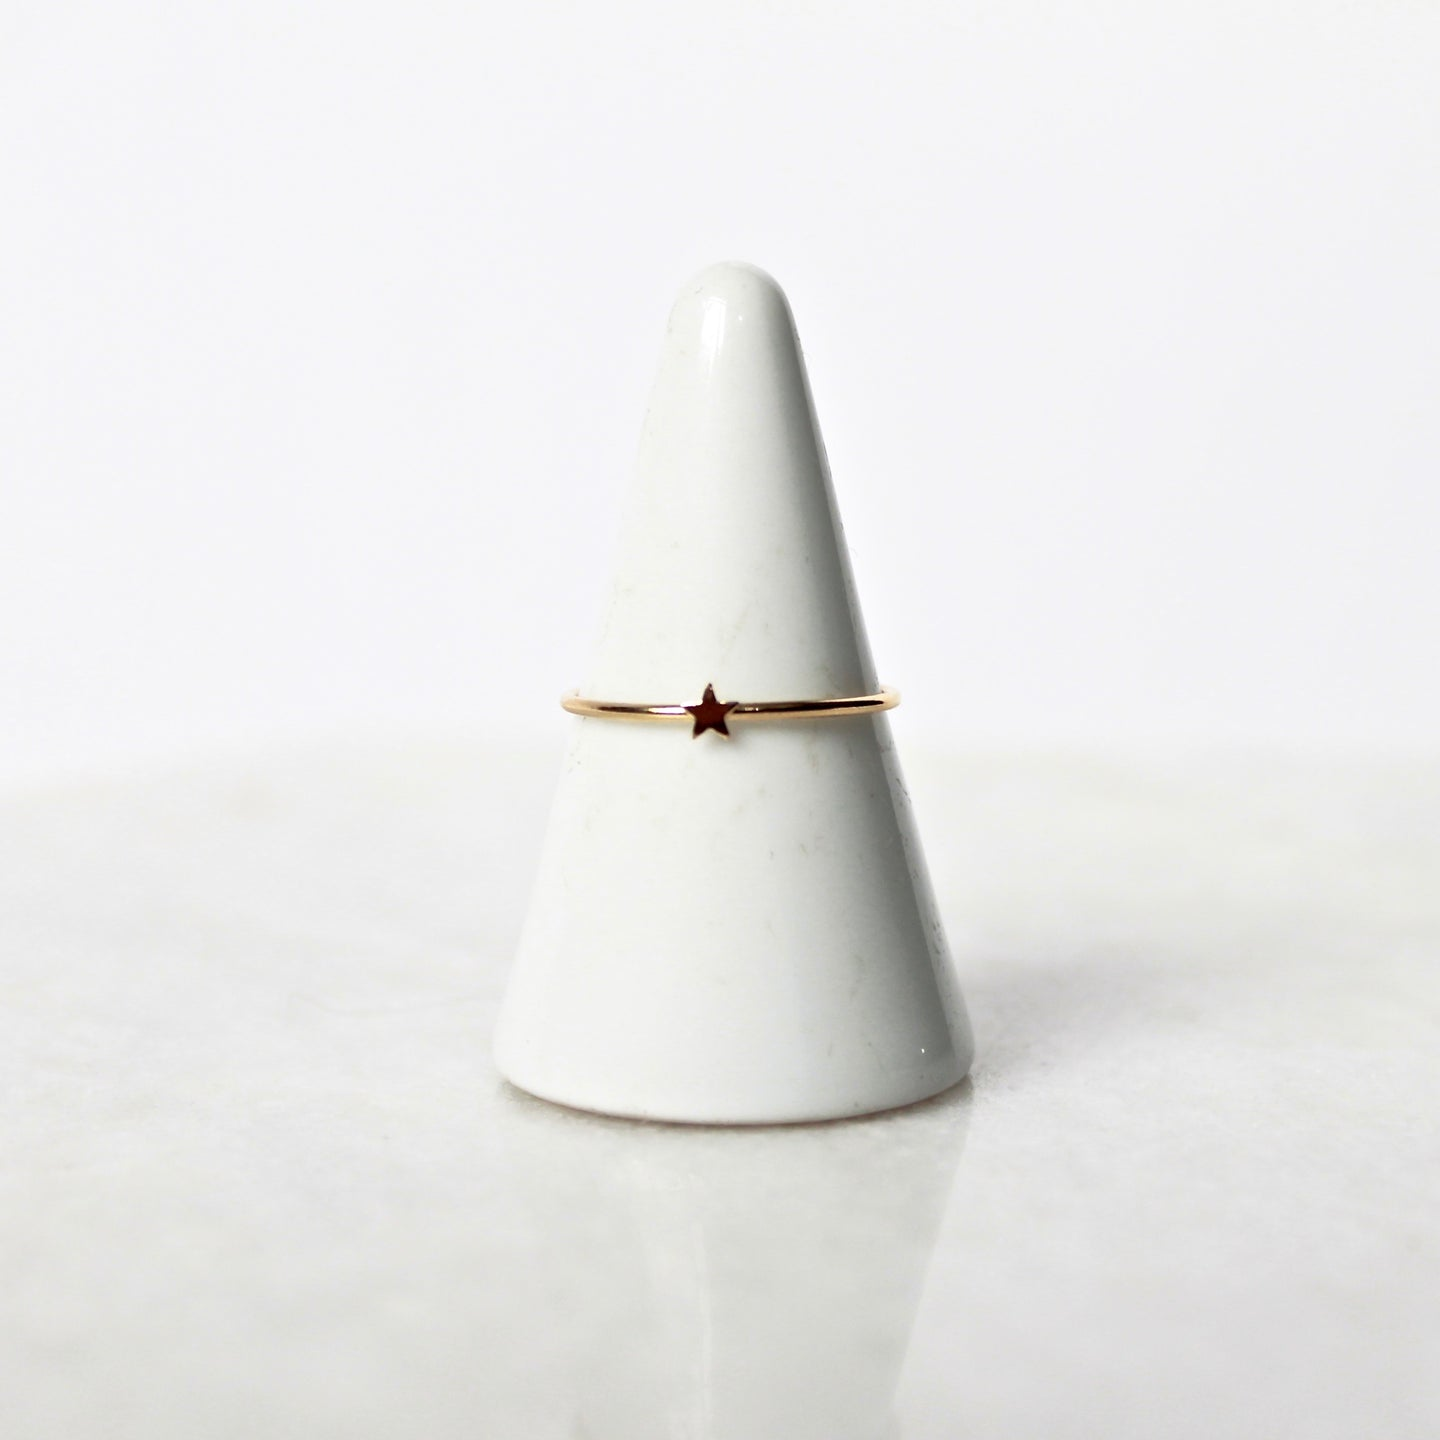 Star Gold Filled Ring